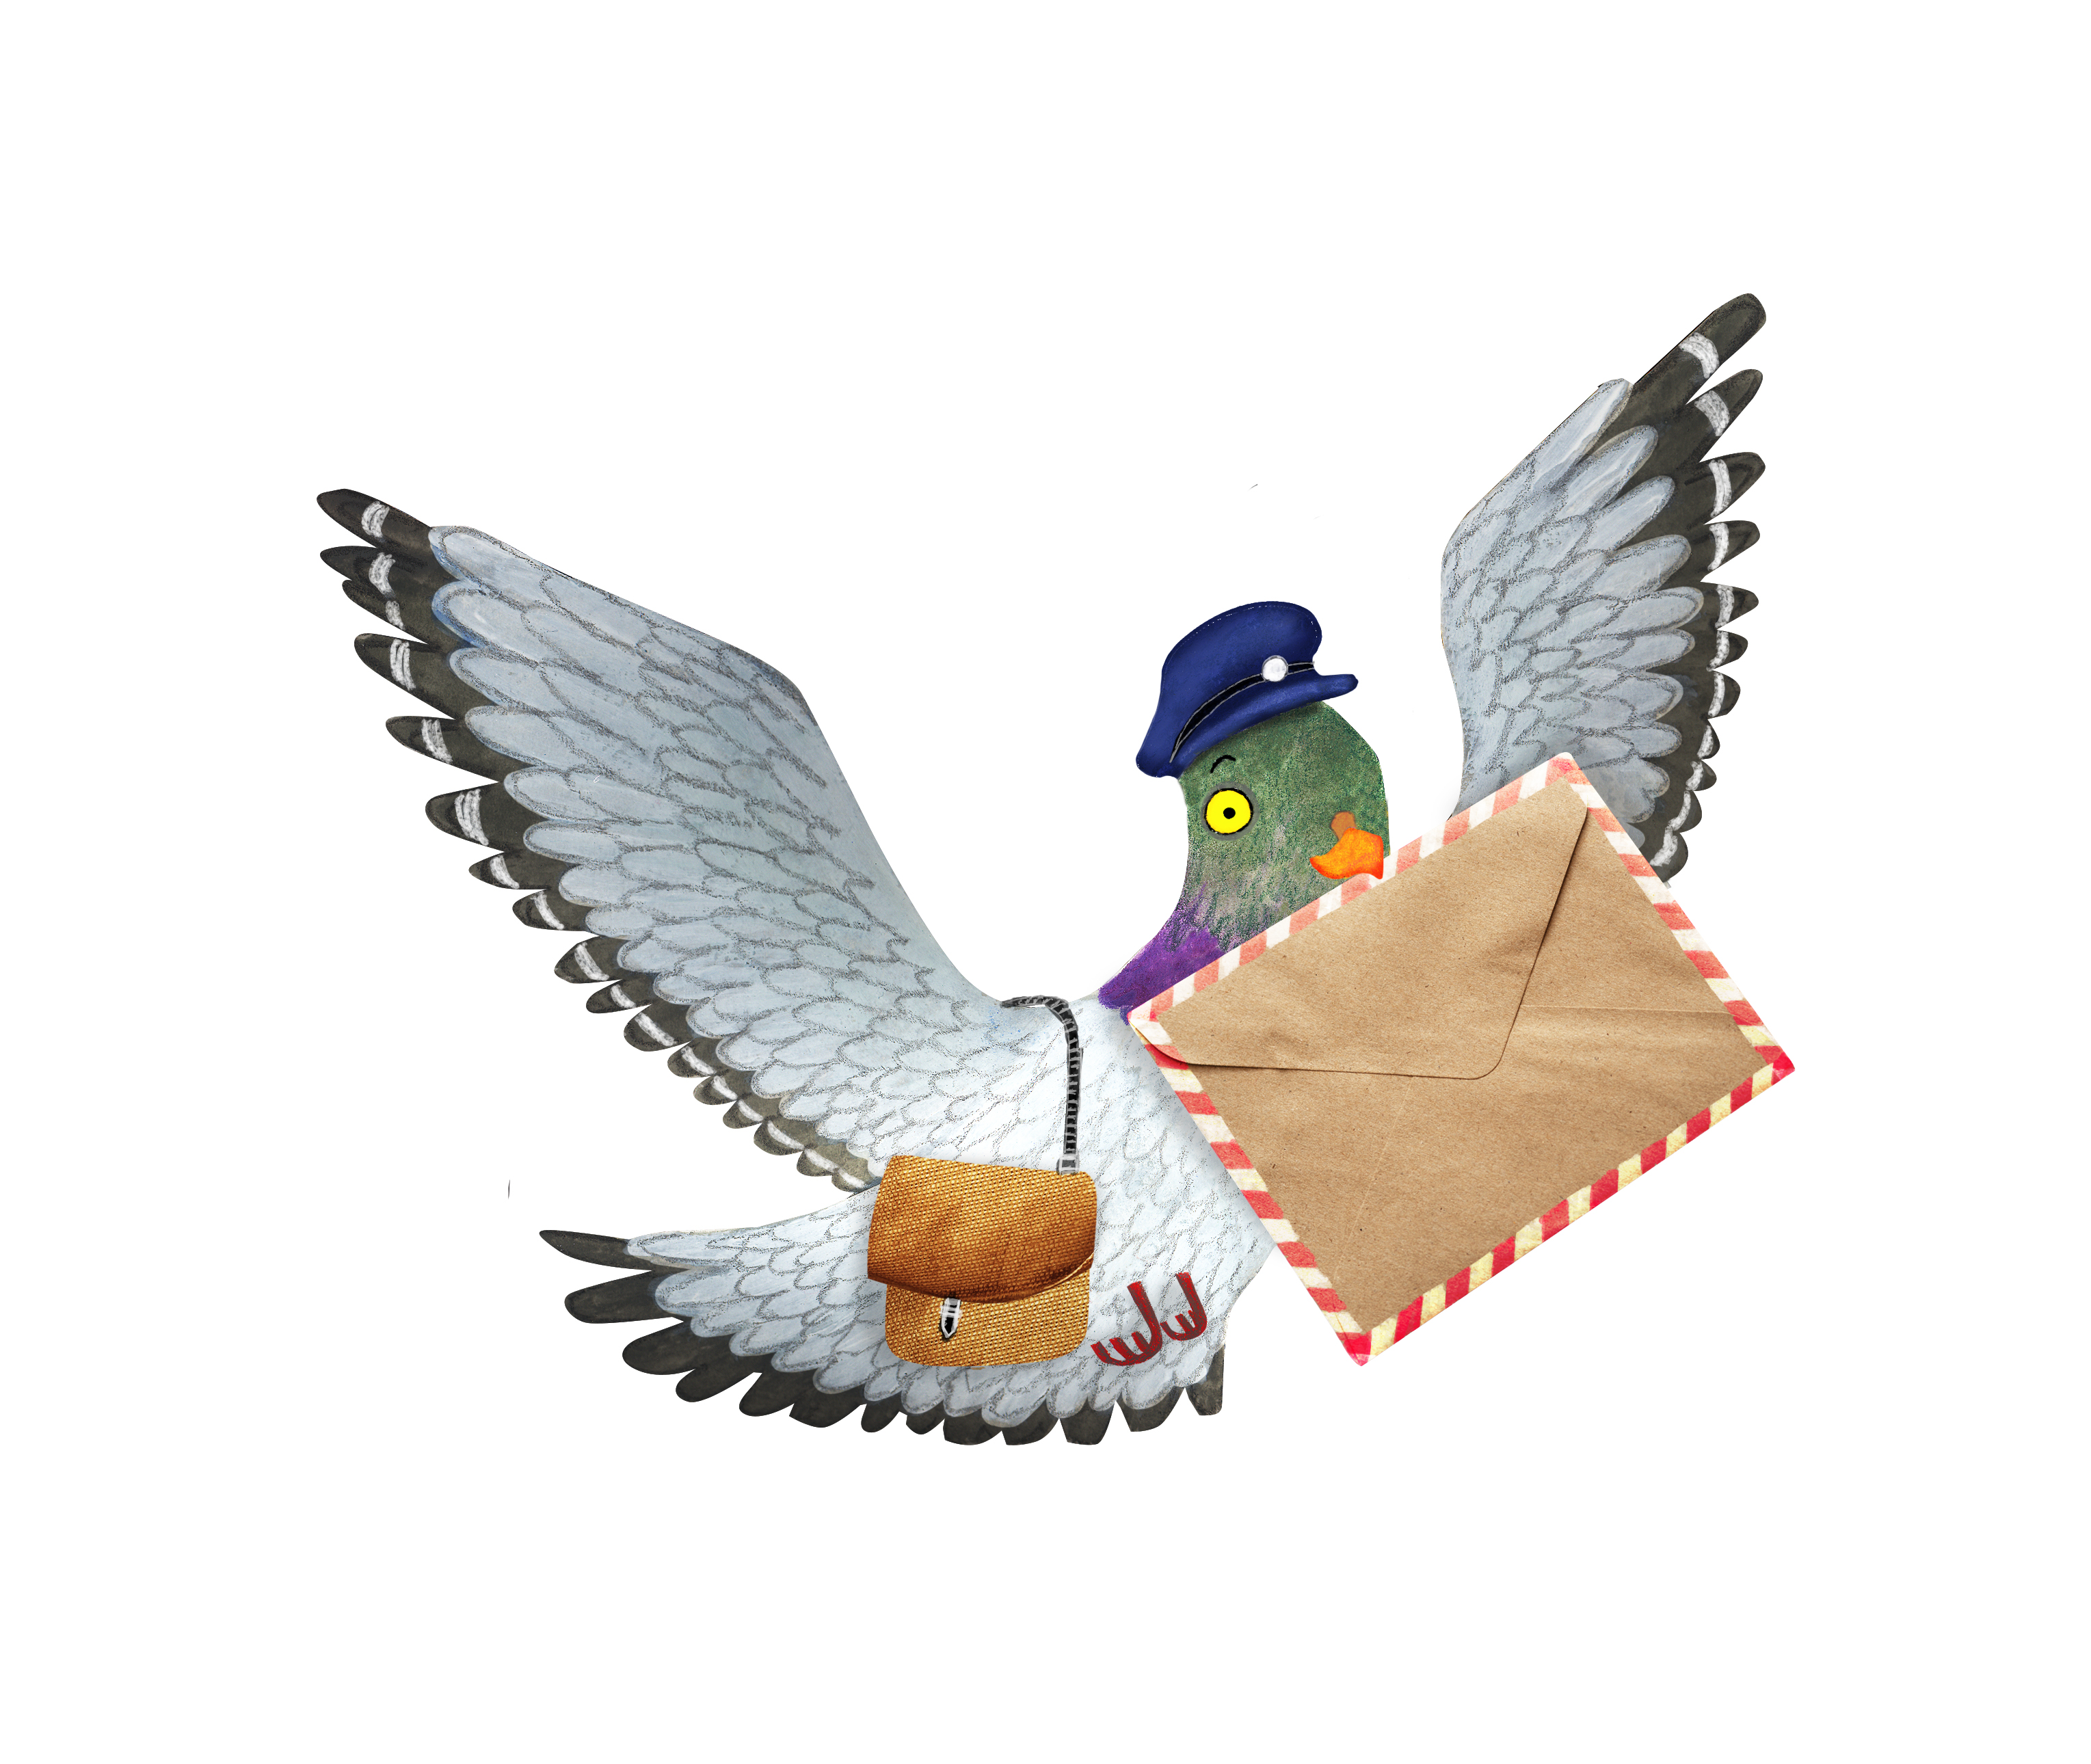 contact me by sending a message with Mr Coo the carrier pigeon